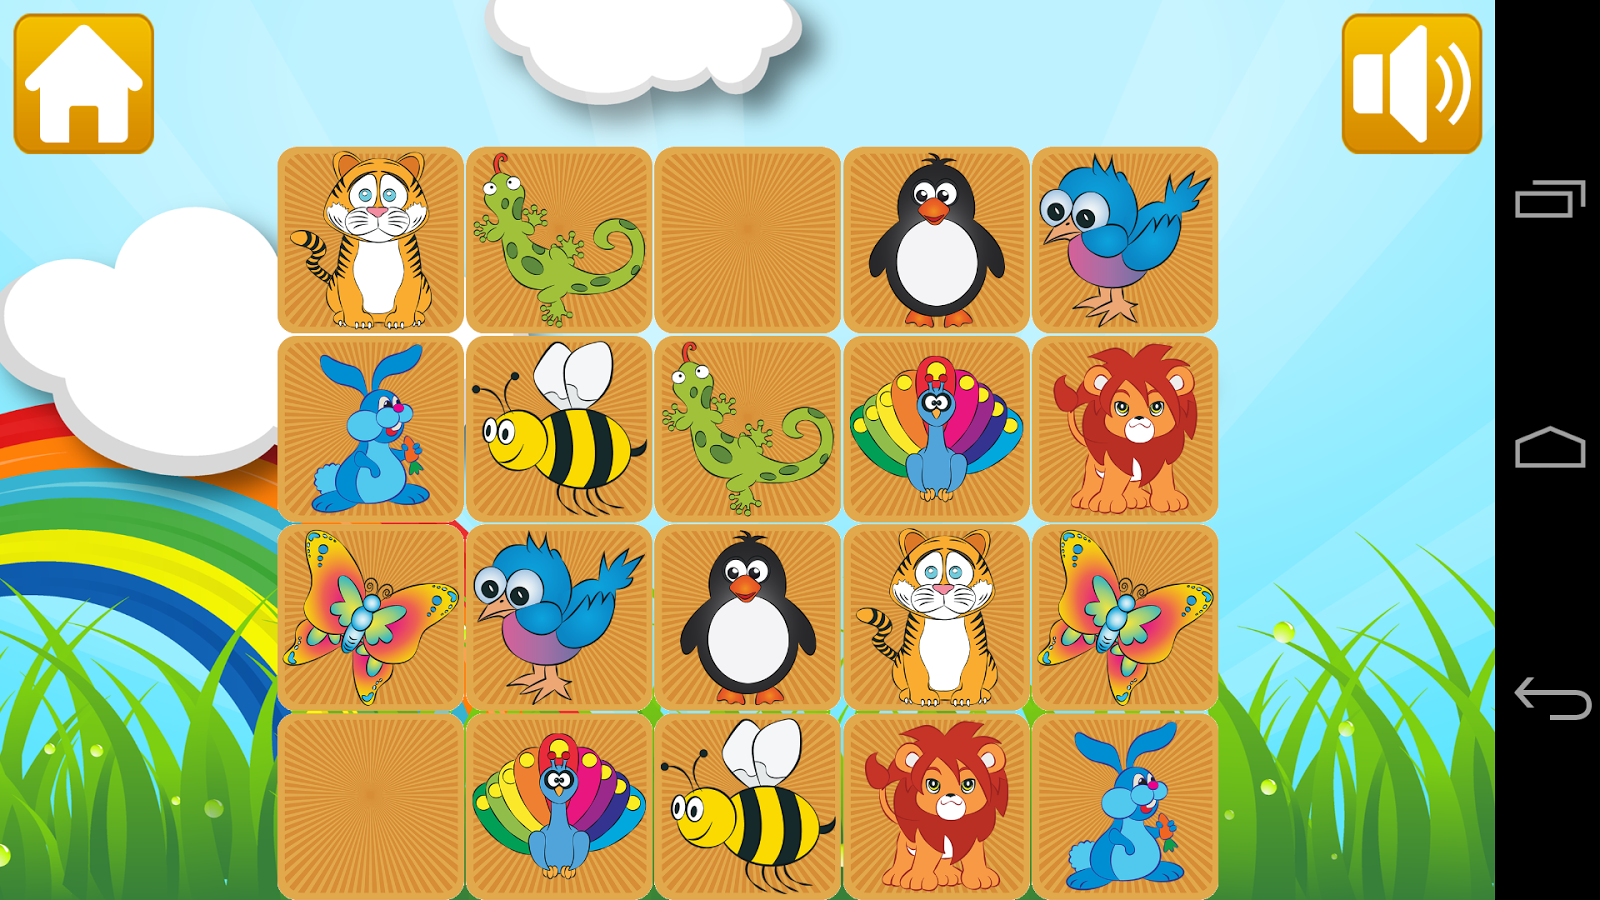 Uncategorized Memory Pairs memory pairs for kids android apps on google play screenshot